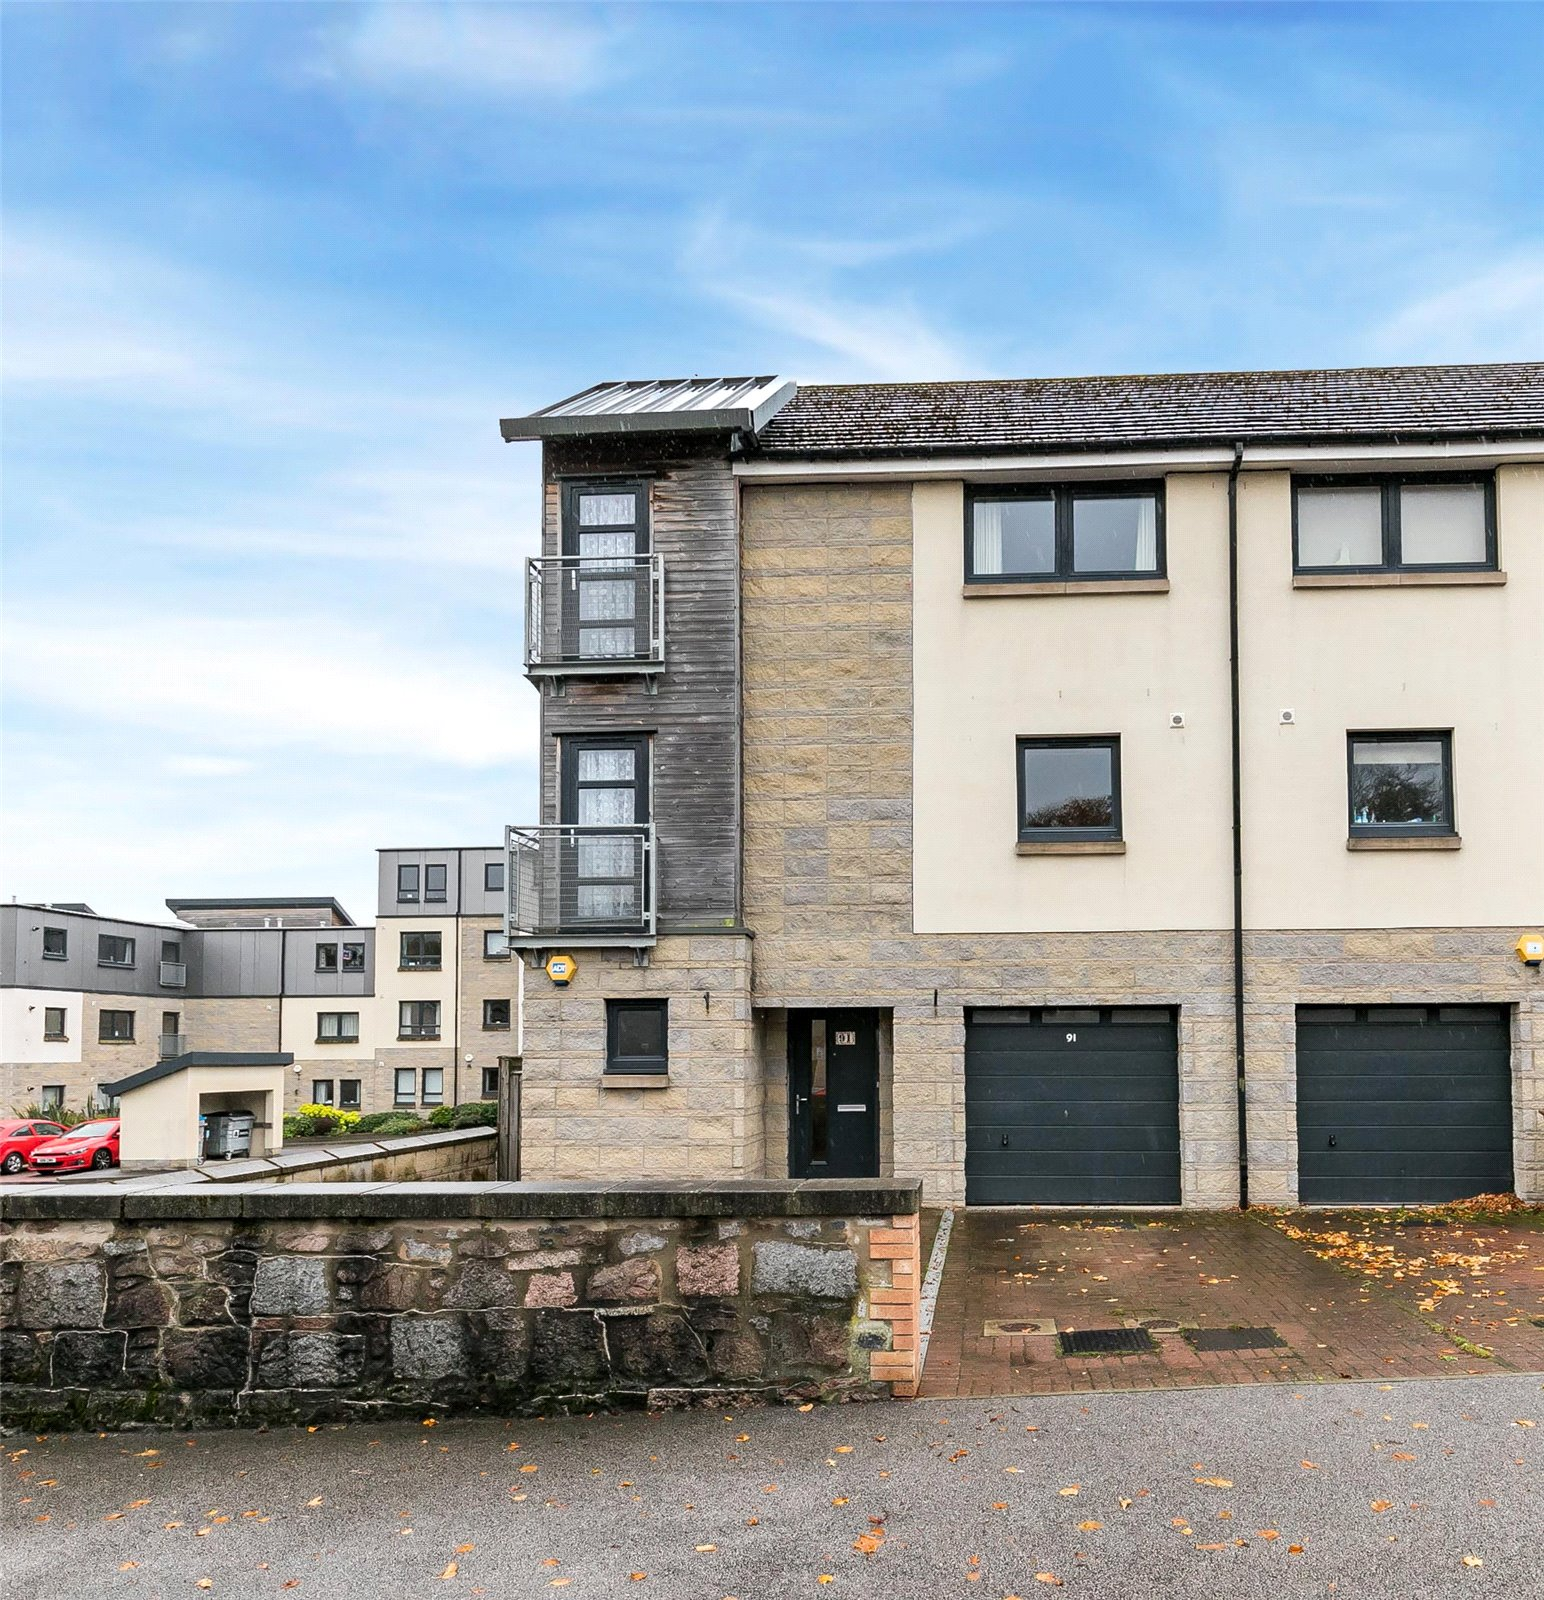 Our latest properties for sale and to let (26th October 2018)